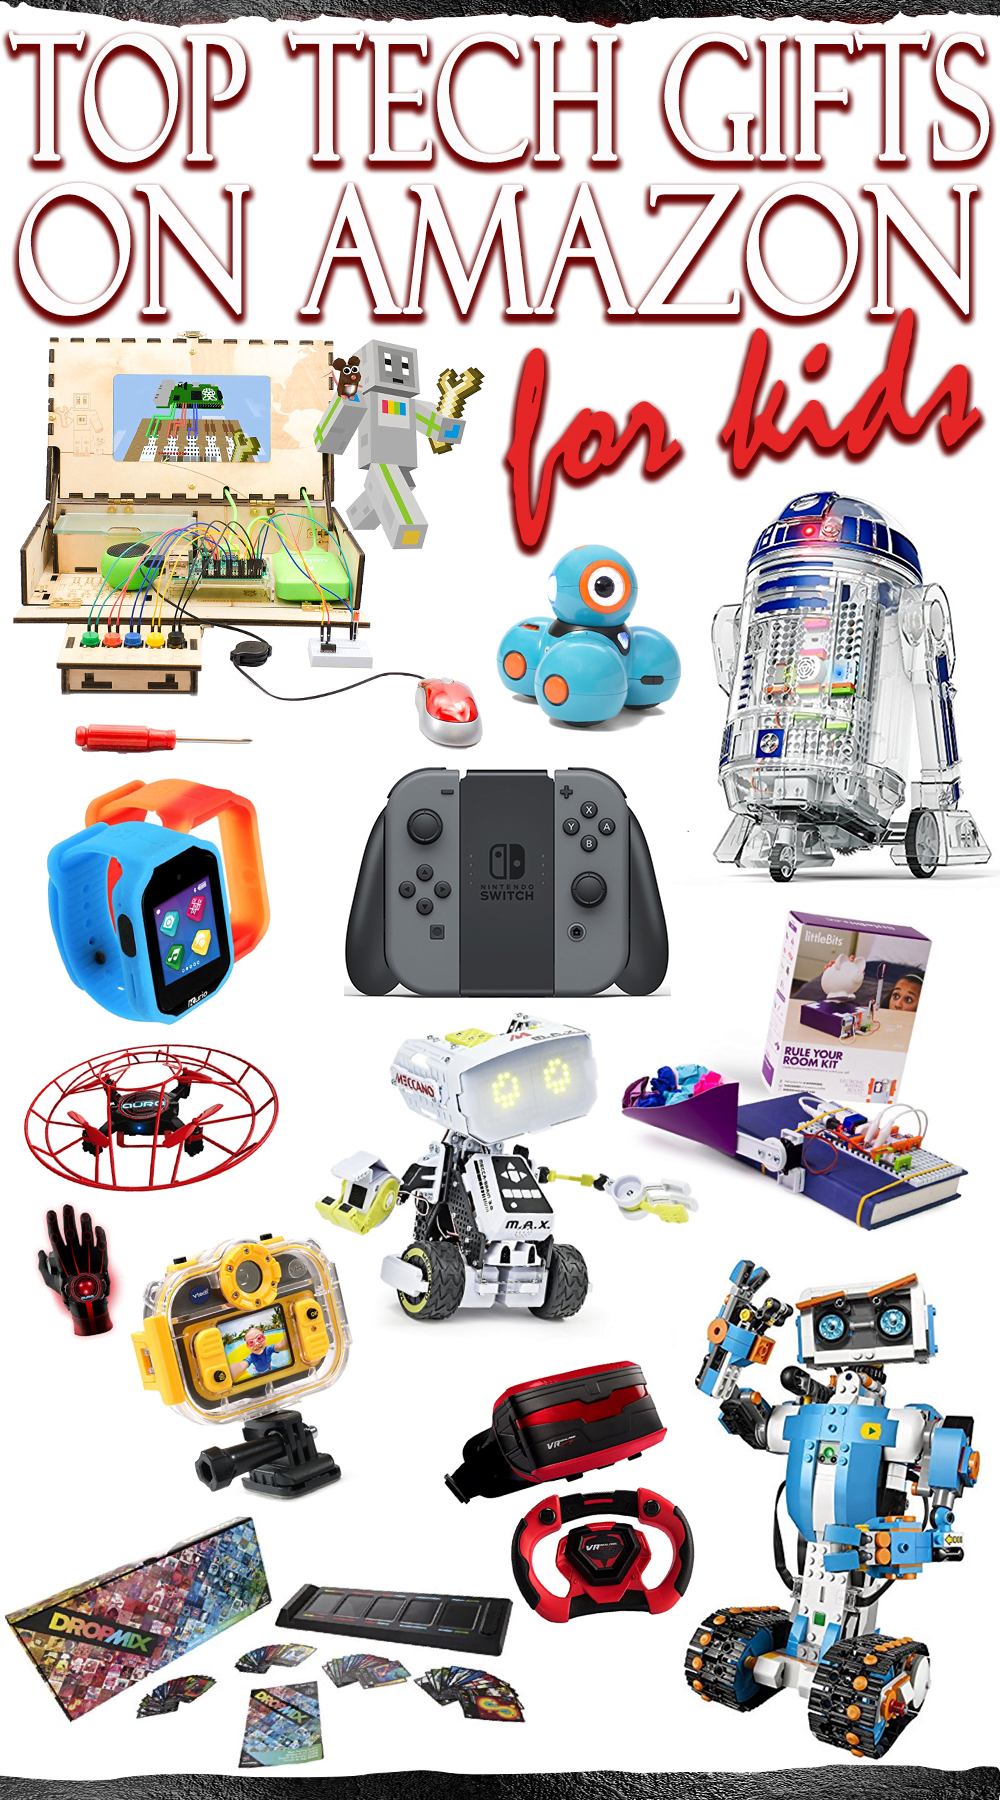 top tech gifts for kids on amazon present ideas for boys girls for christmas holiday season birthday gifts christmas kids amazon - Amazon Christmas Gifts